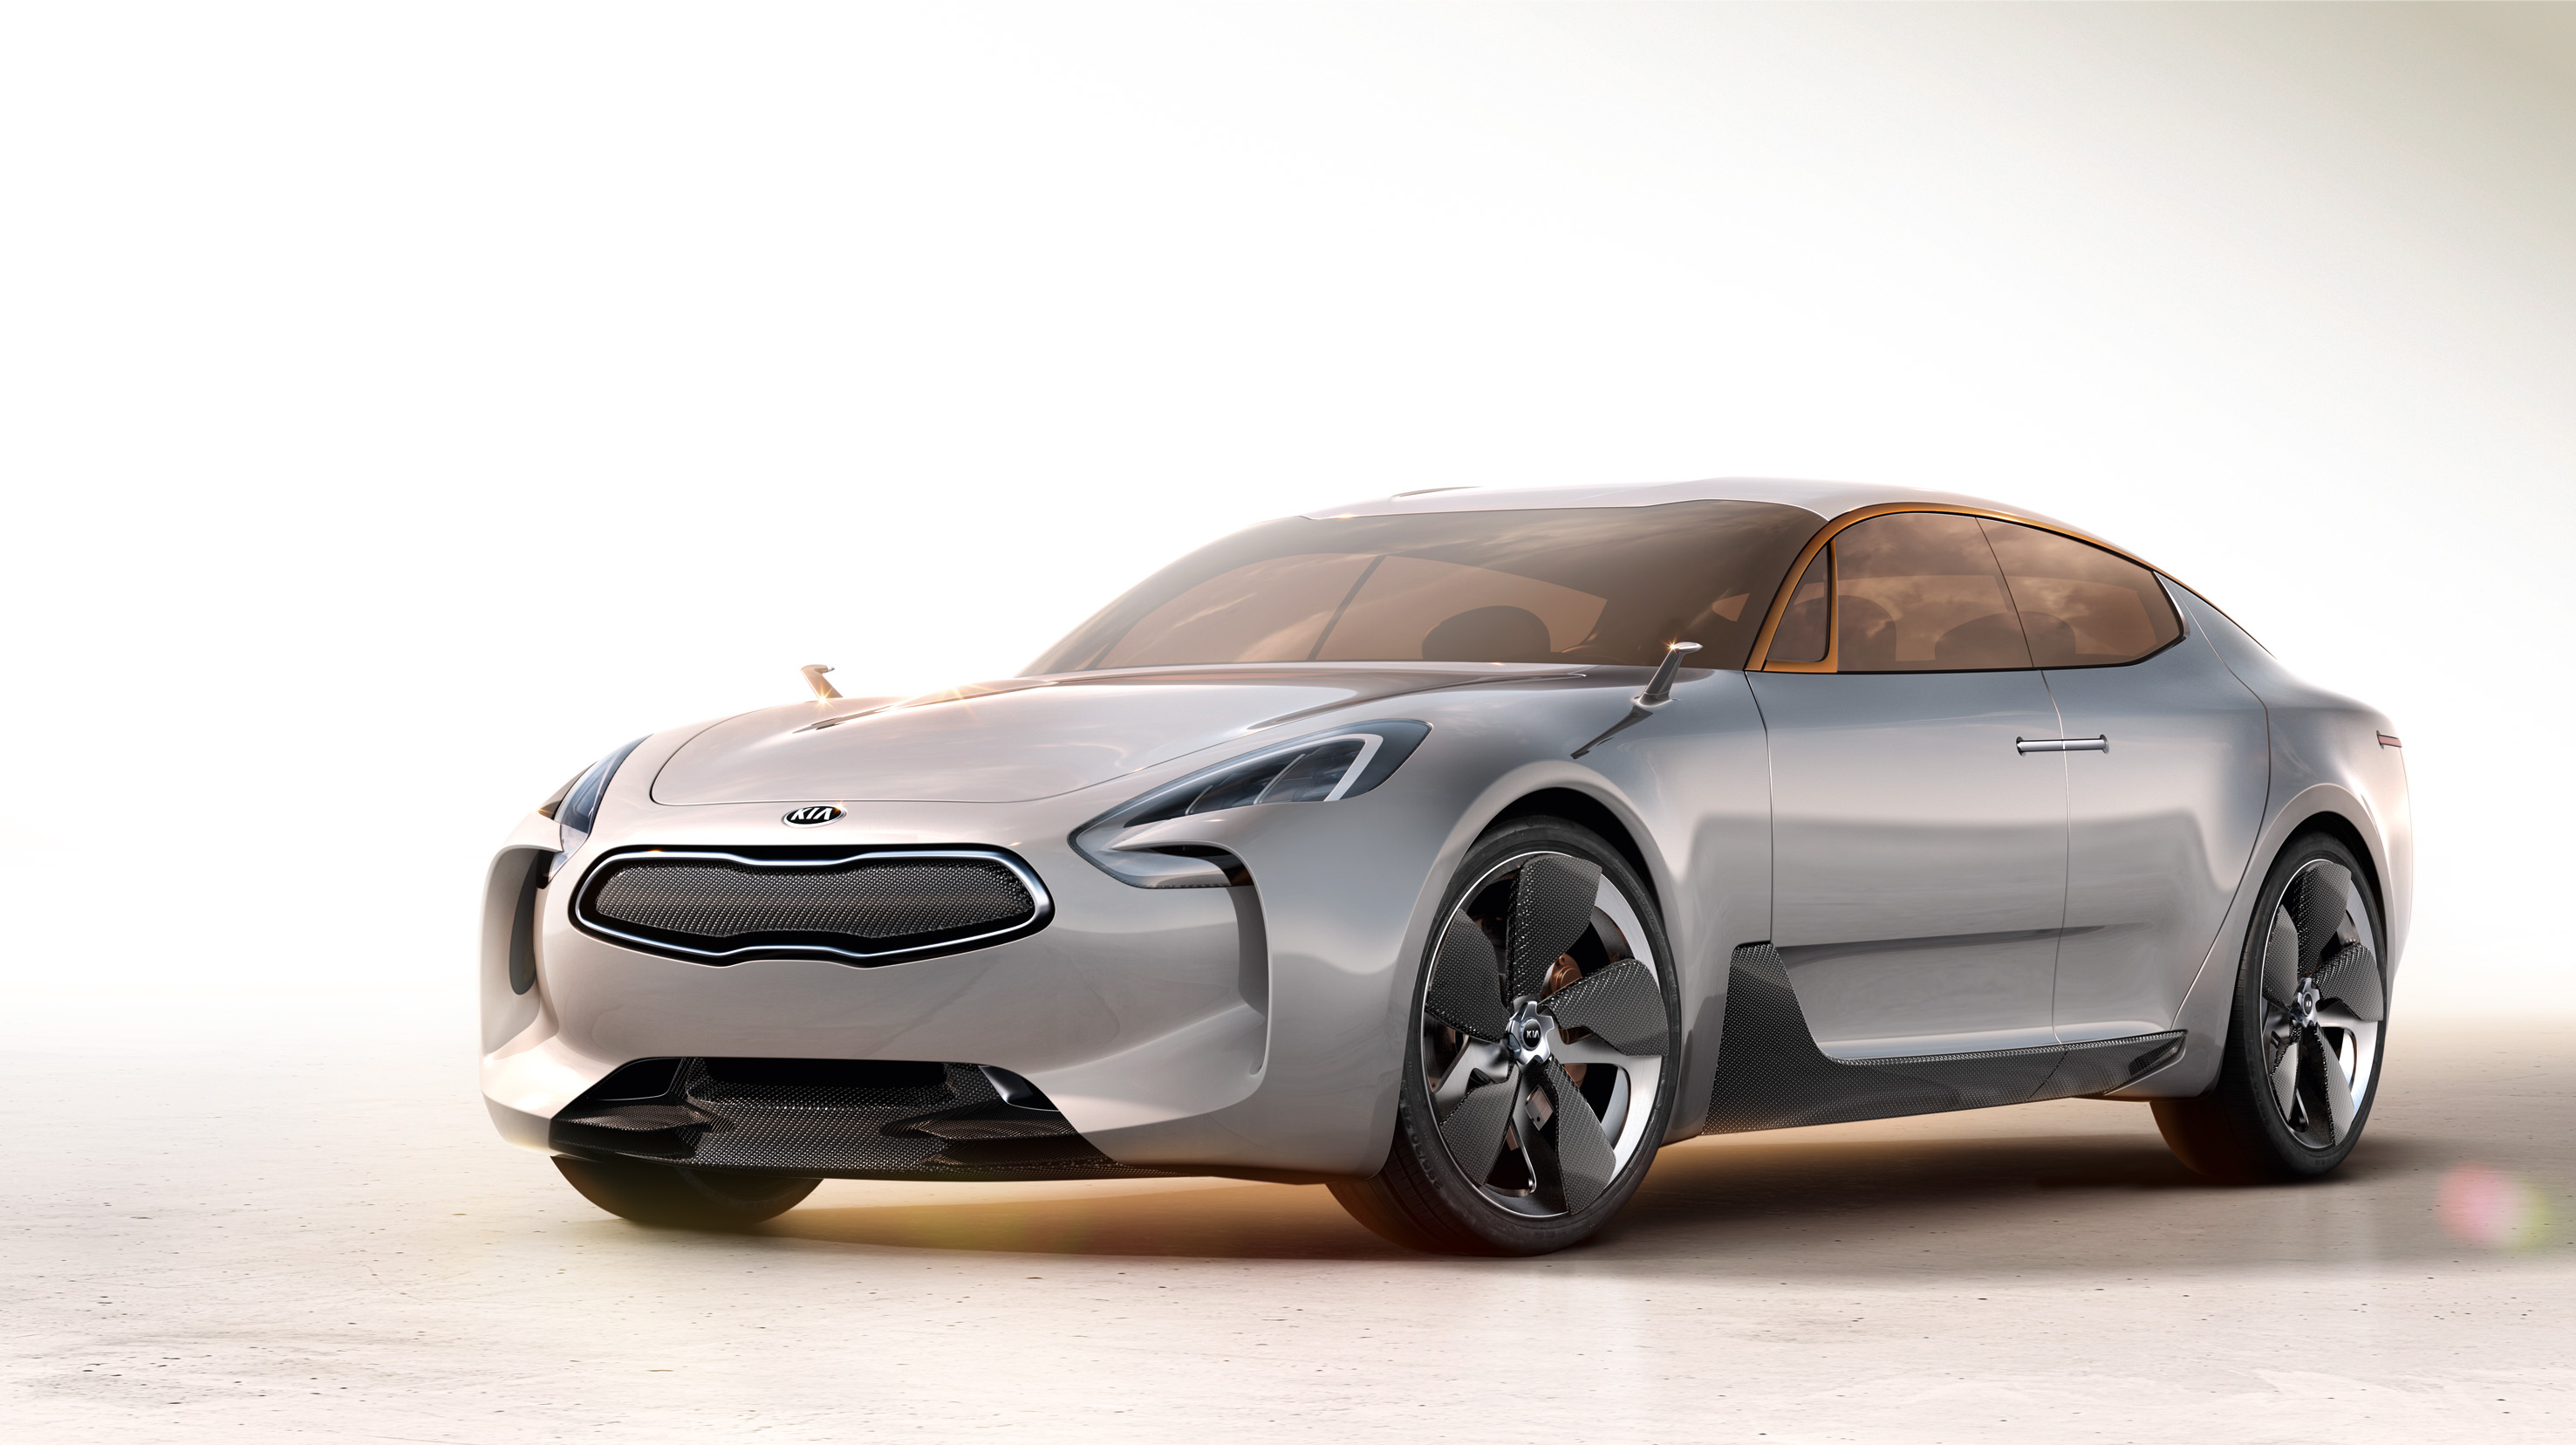 kia production premium korean looking yet announces good autos may we concept see gt a